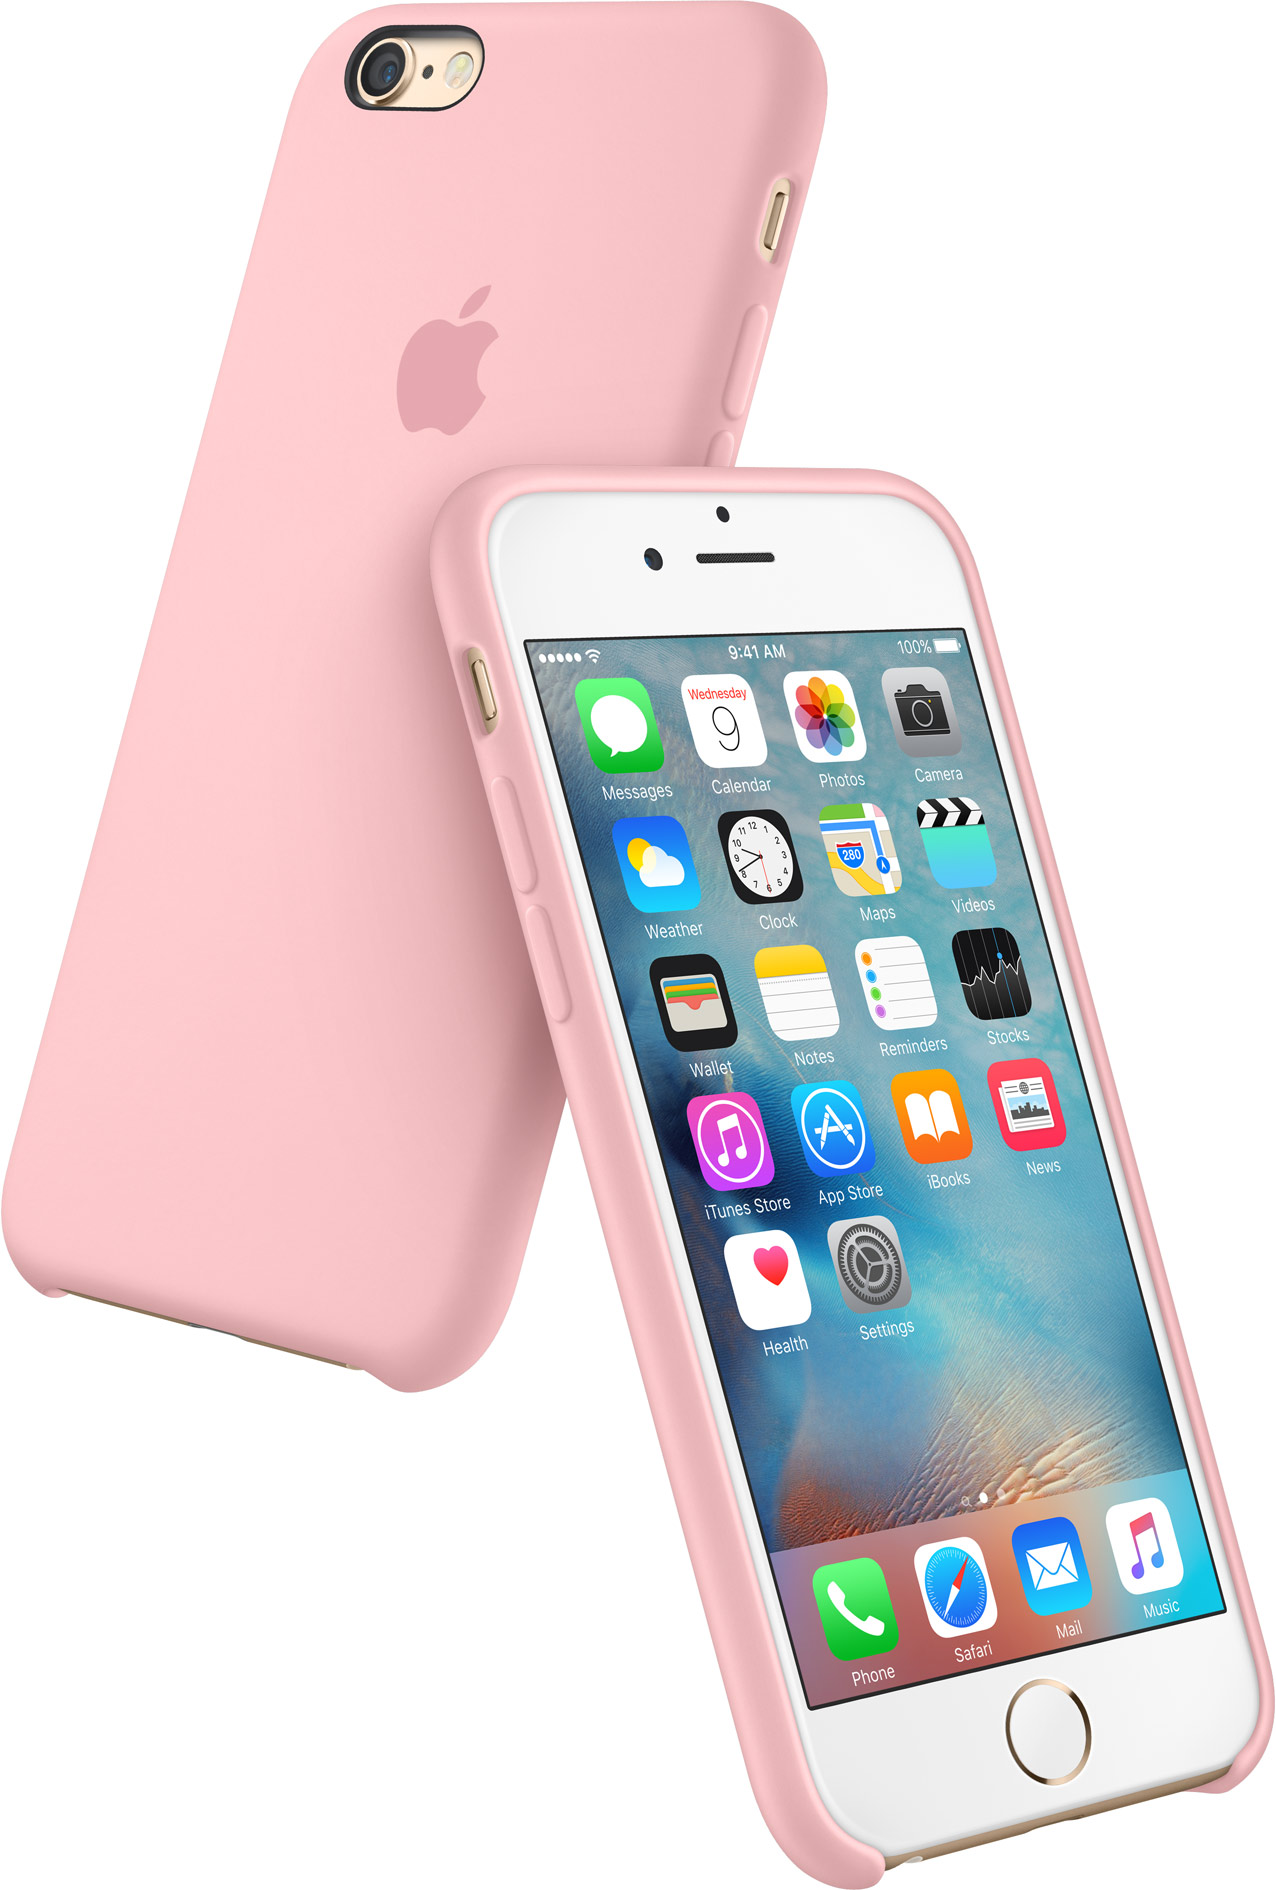 online retailer c5687 fc261 Apple's iPhone 6/6 Plus cases will fit the new iPhone 6s/6s Plus models